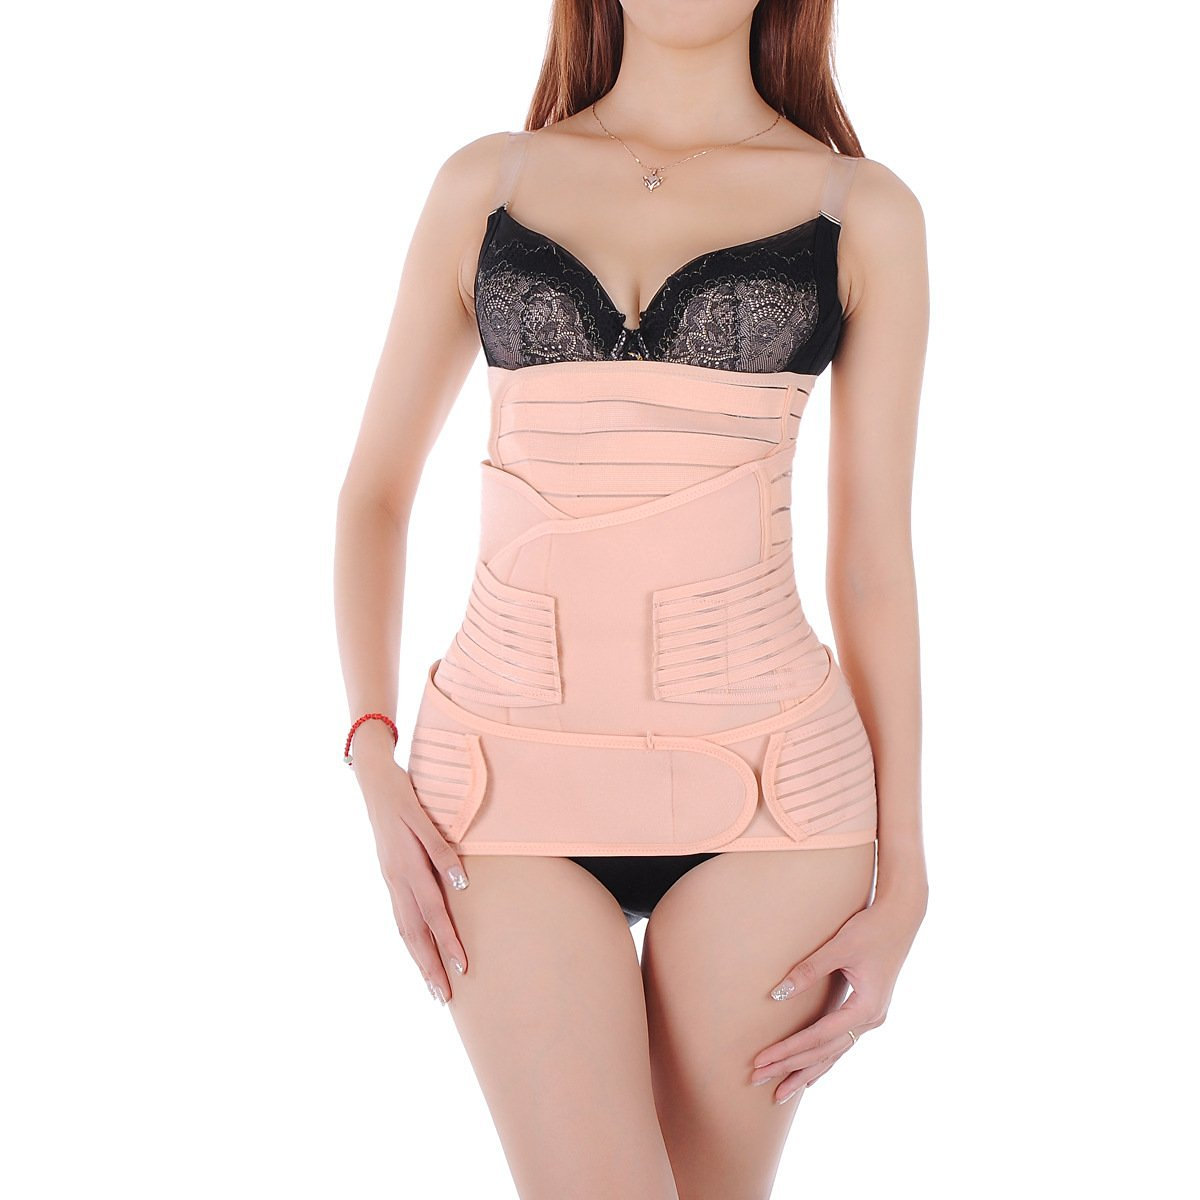 Cheap Girdle For C Section Recovery Find Girdle For C Section